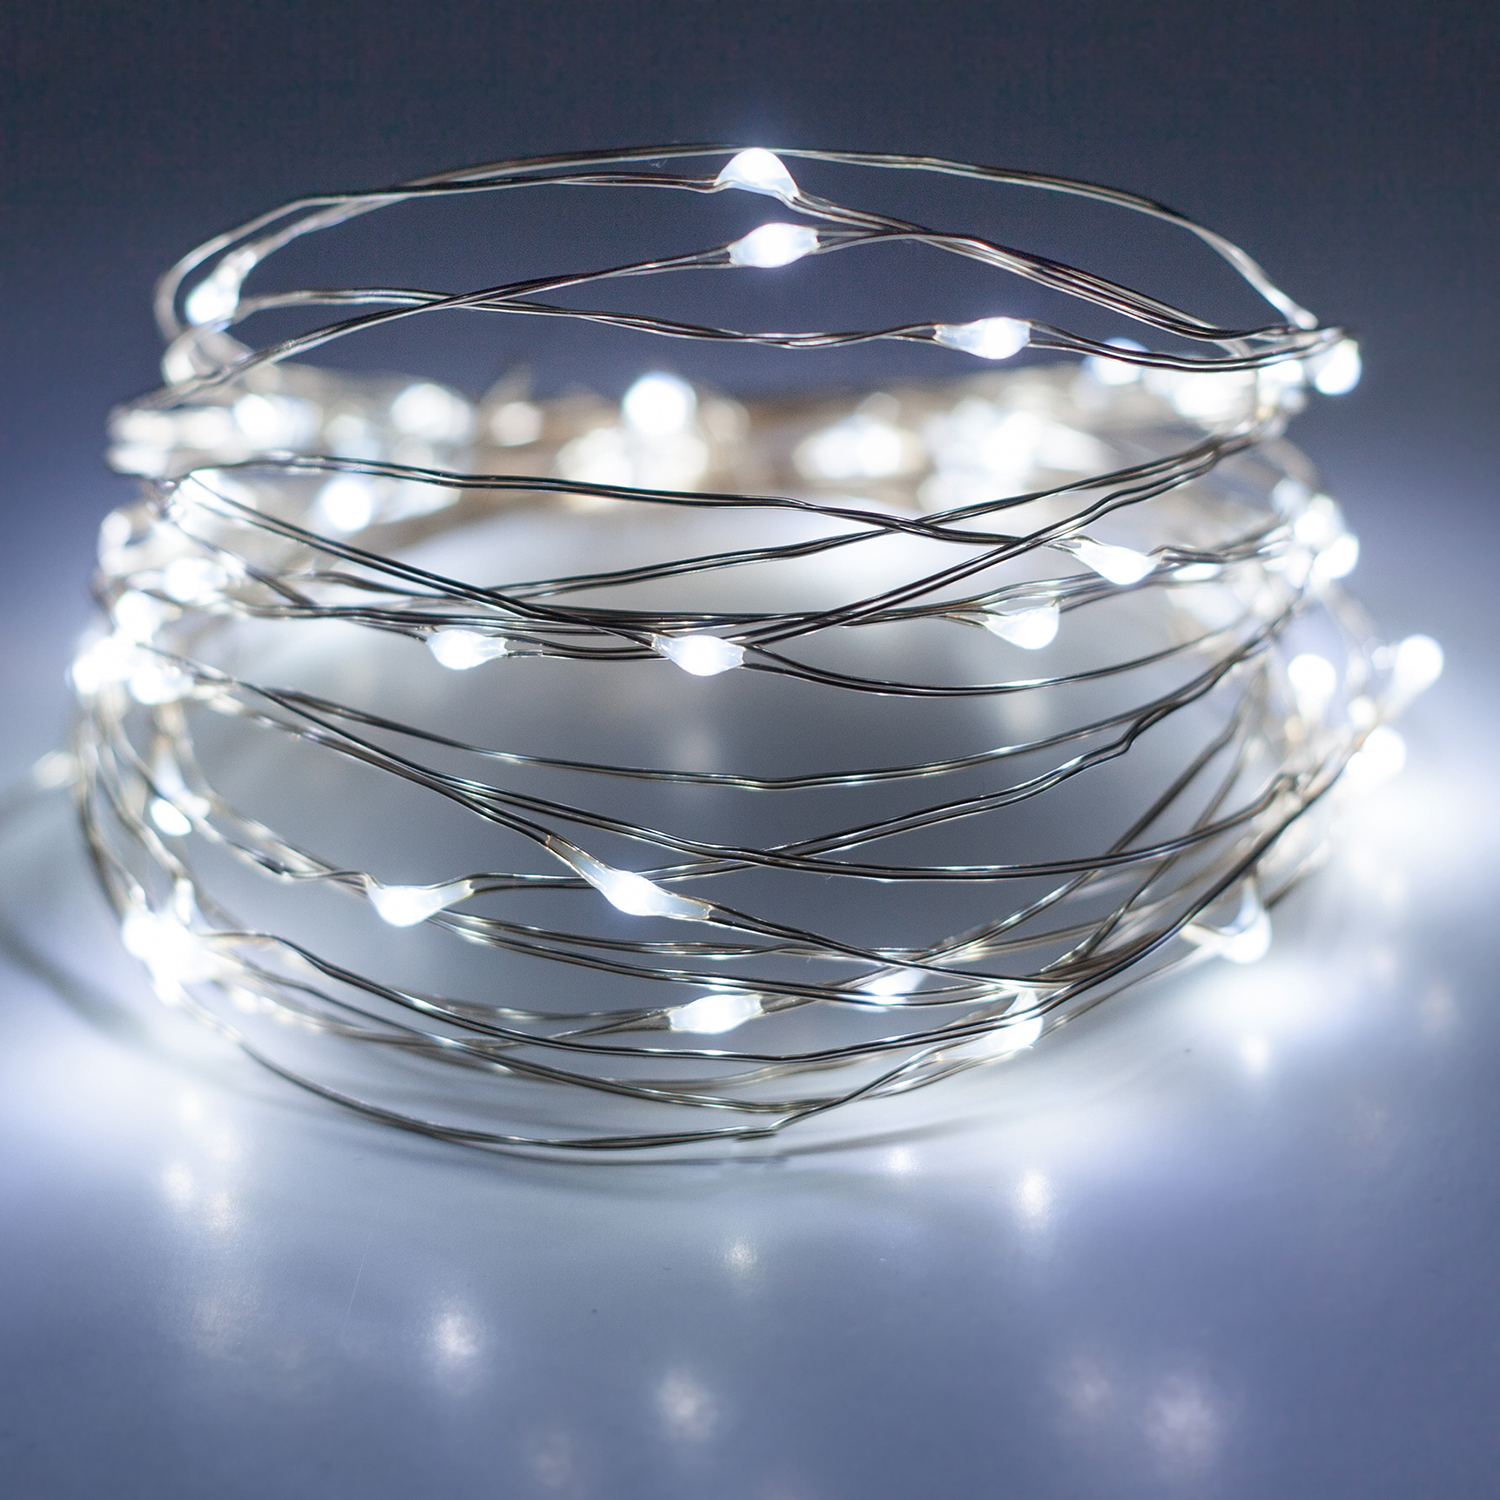 Copper Wire String Fairy Starry LED Lights, 2 Pack , Cool White, Silver-Plated Battery Operated Waterproof 6.5' ft